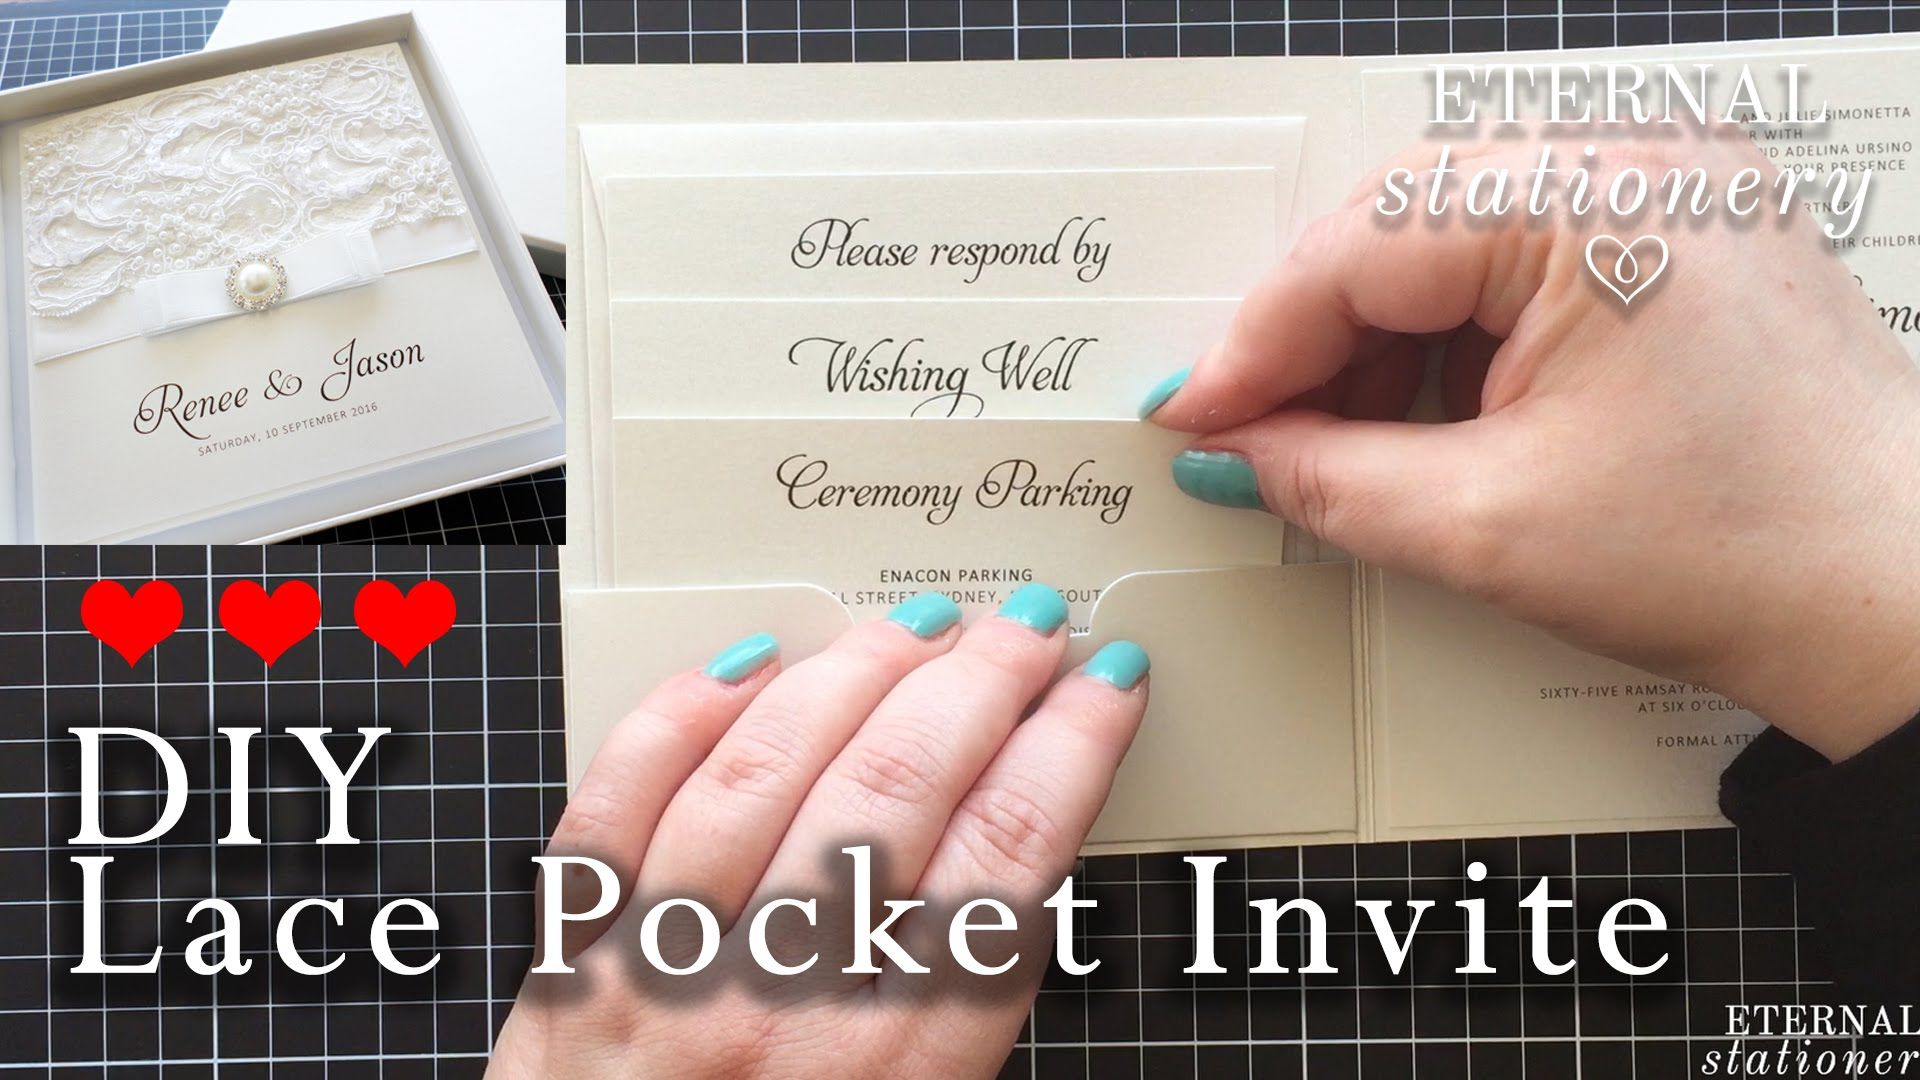 How to make a lace pocket wedding invitation | DIY invitations ...